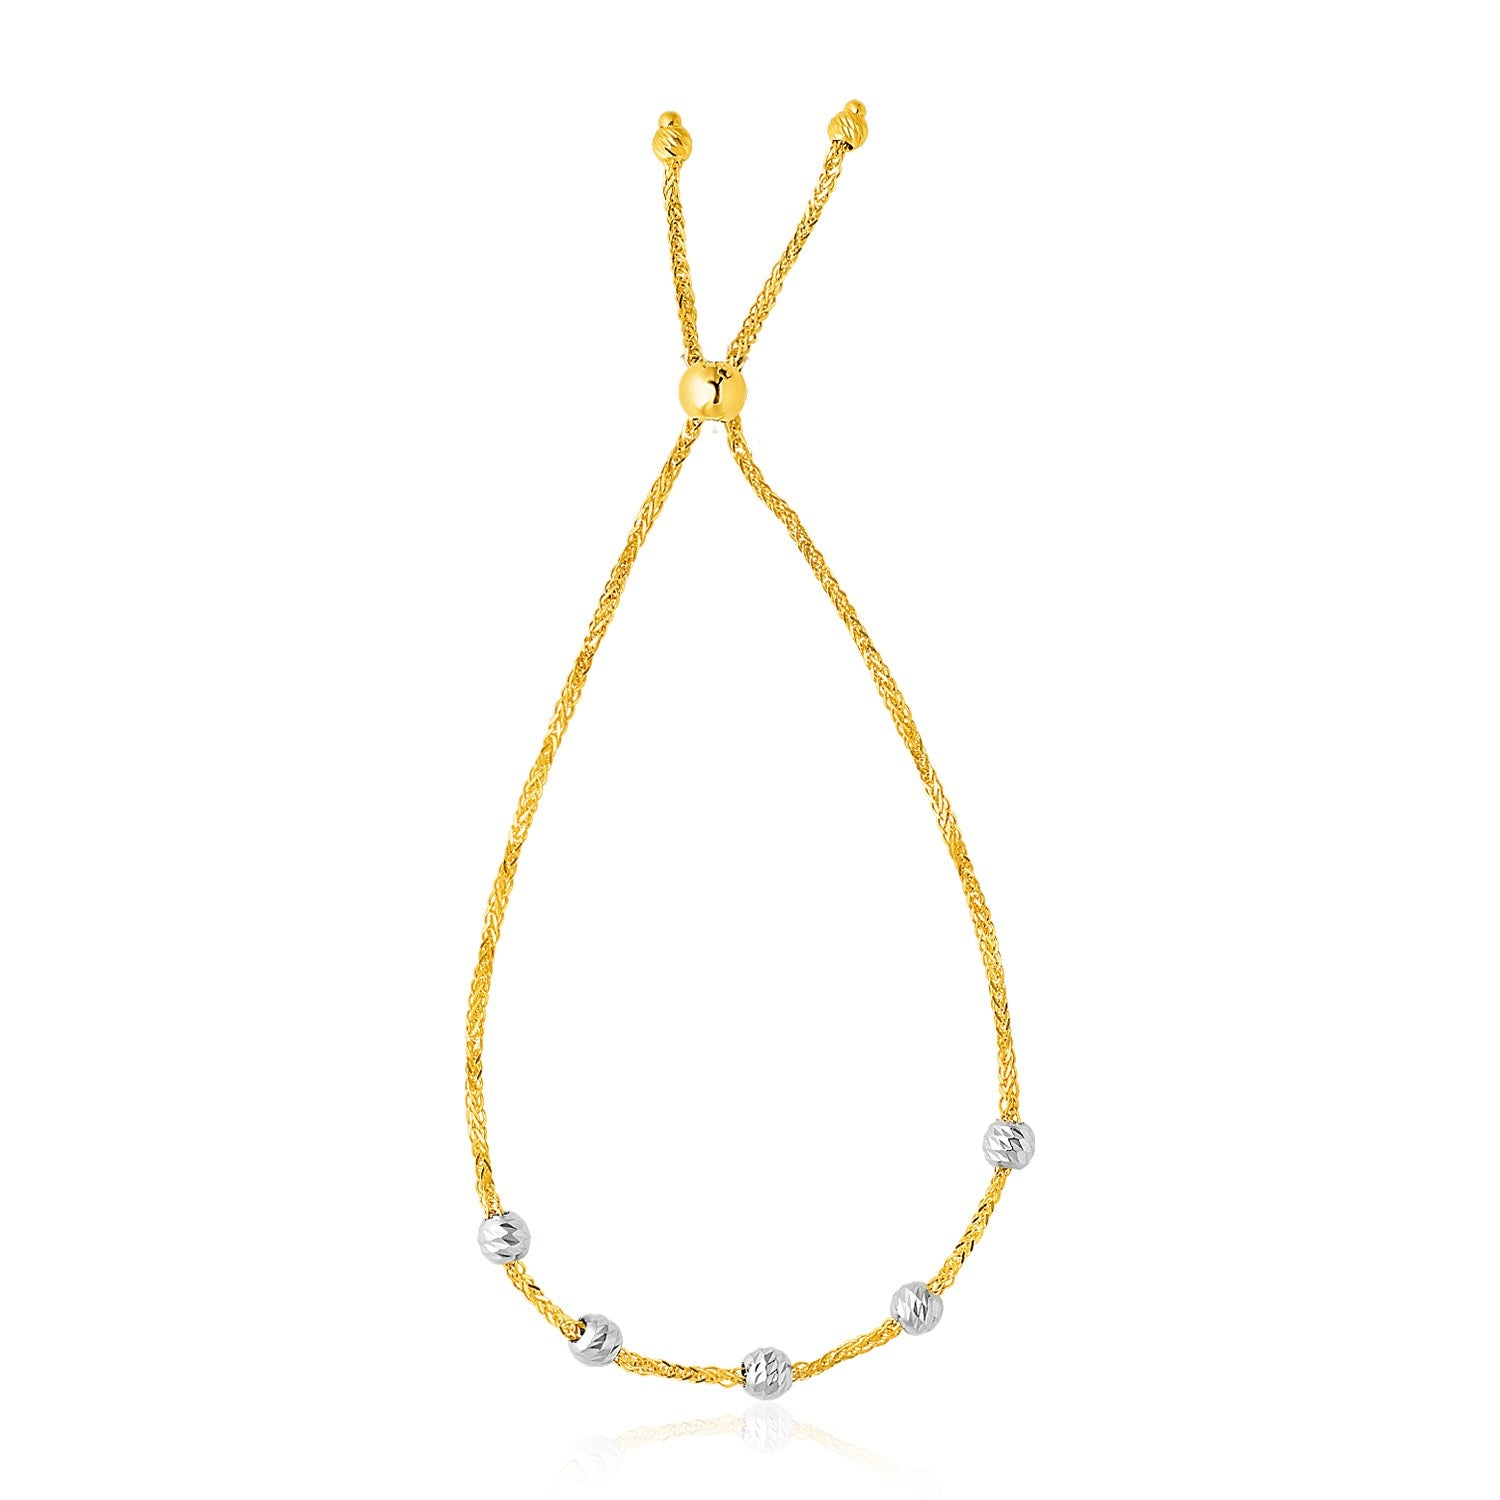 14K Two-Tone Gold Textured Round Bead Lariat Chain Bracelet